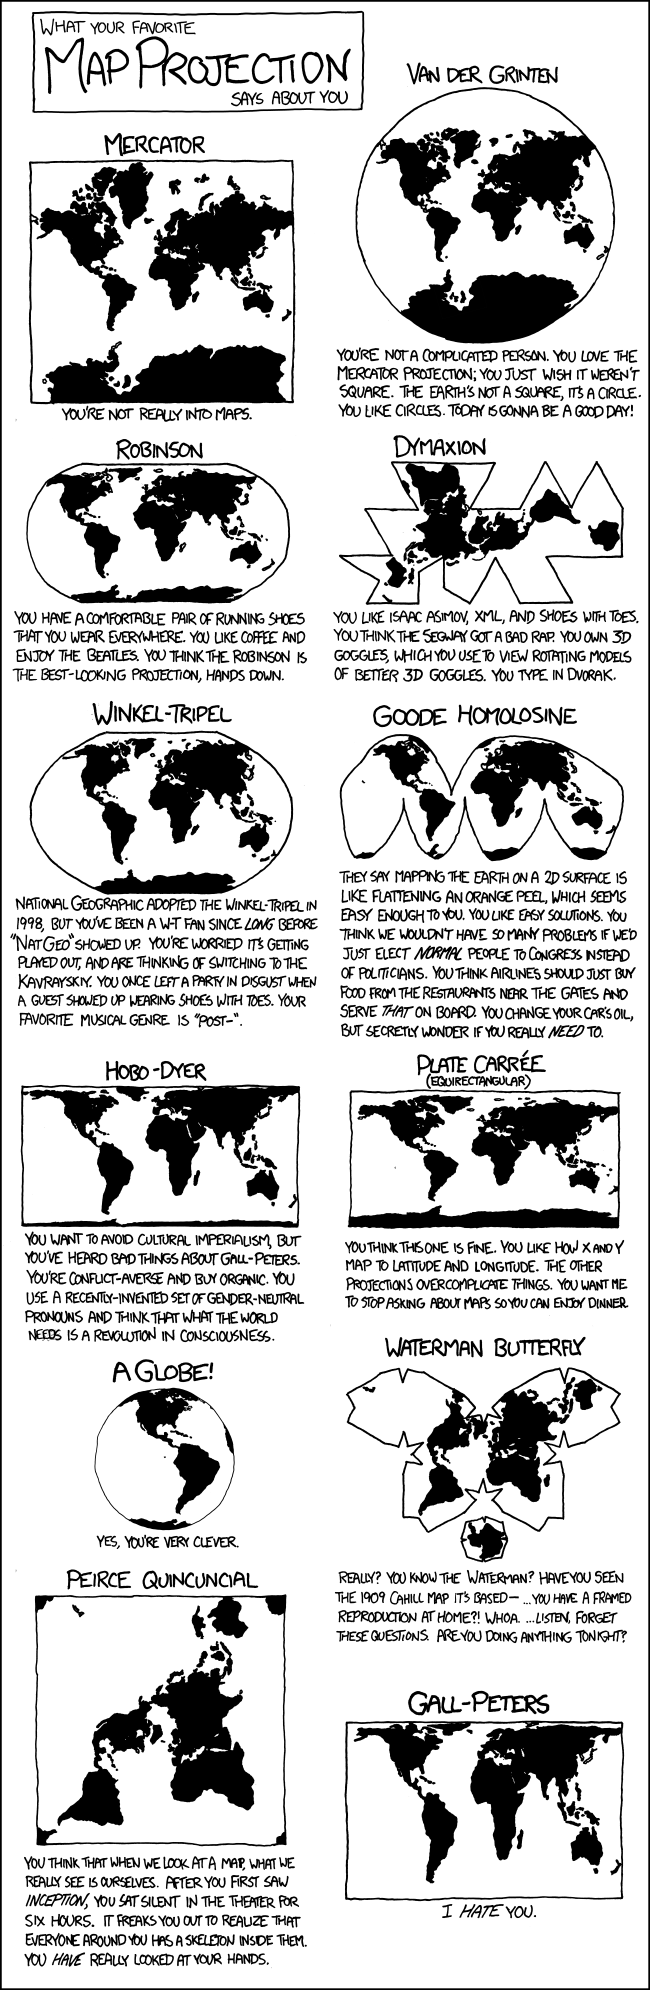 https://imgs.xkcd.com/comics/map_projections.png